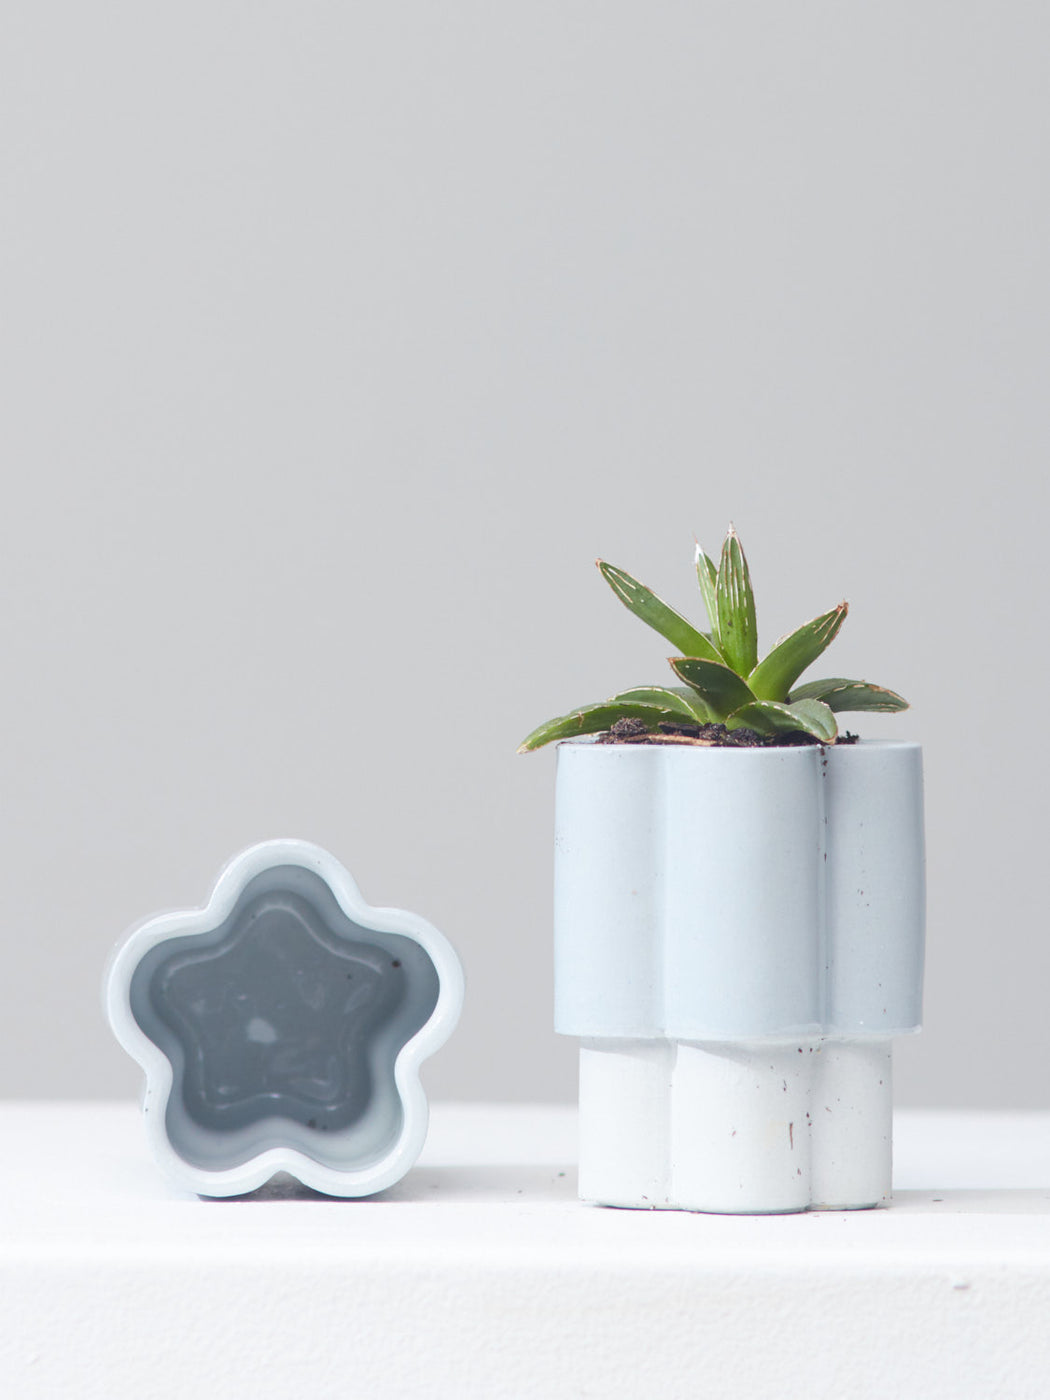 HIGH NOON ARTIST EDITION PLANTER - BABY, Small 3 Inch